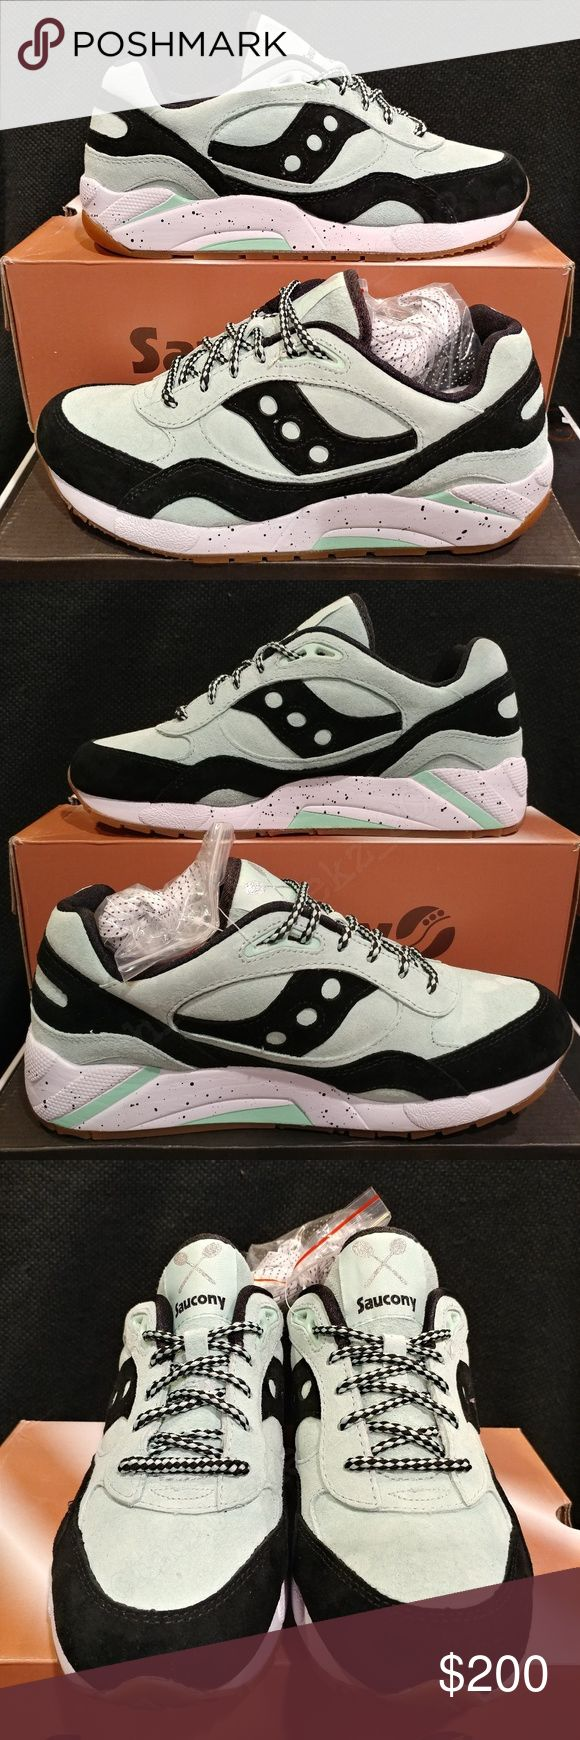 2015 Saucony G9 Shadow 6 'Mint Chocolate Chip' Saucony with an ice cream theme with the green/black representing the mint chocolate chip flavor. The midsole looks like cookies and ice cream while the gum bottoms represent the cone. The theme rolls over to the box, with the box looking like a container and the paper like  waffle cone.   These are brand new and we're only tried on. Comes with 3 extra laces which are still attached to the shoe. As well as the original box and tissue paper…